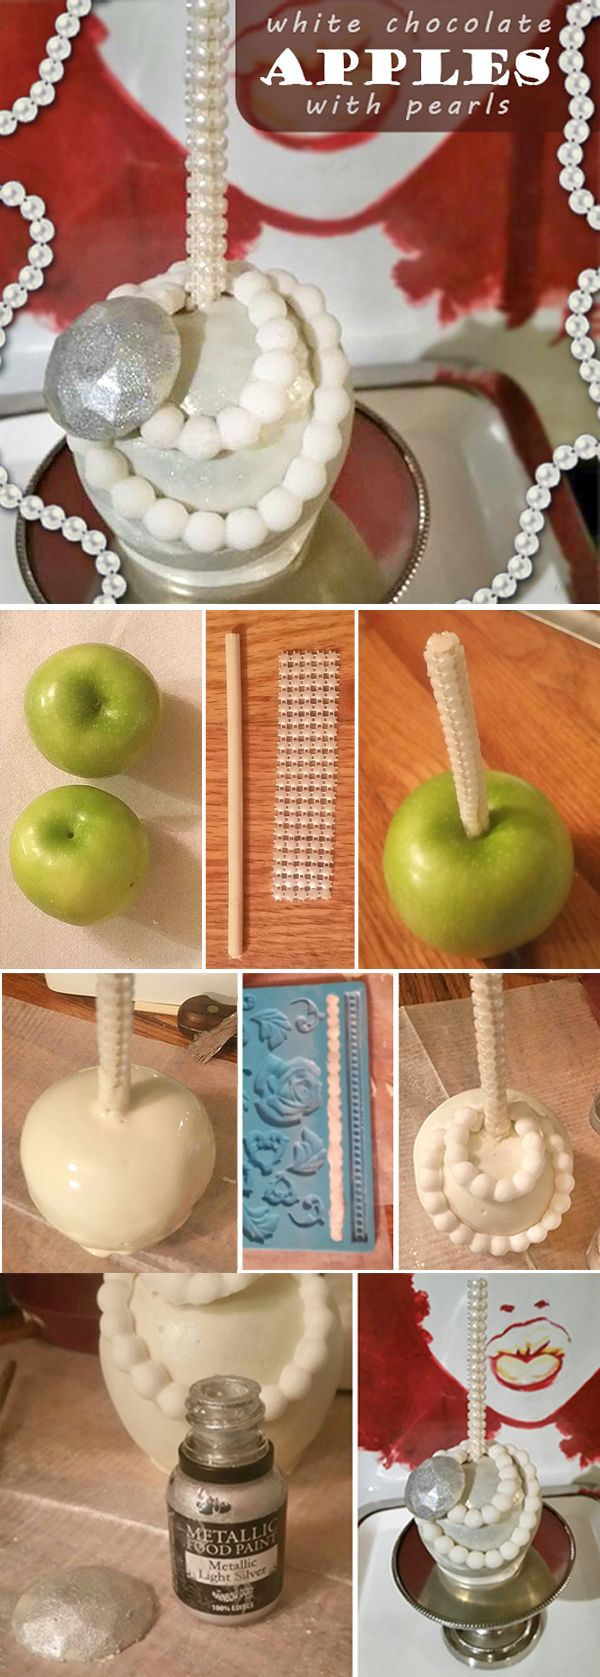 Gorgeous chocolate-covered apples! Learn step-by-step how to turn apples into edible works of art. by @treatsbytisha